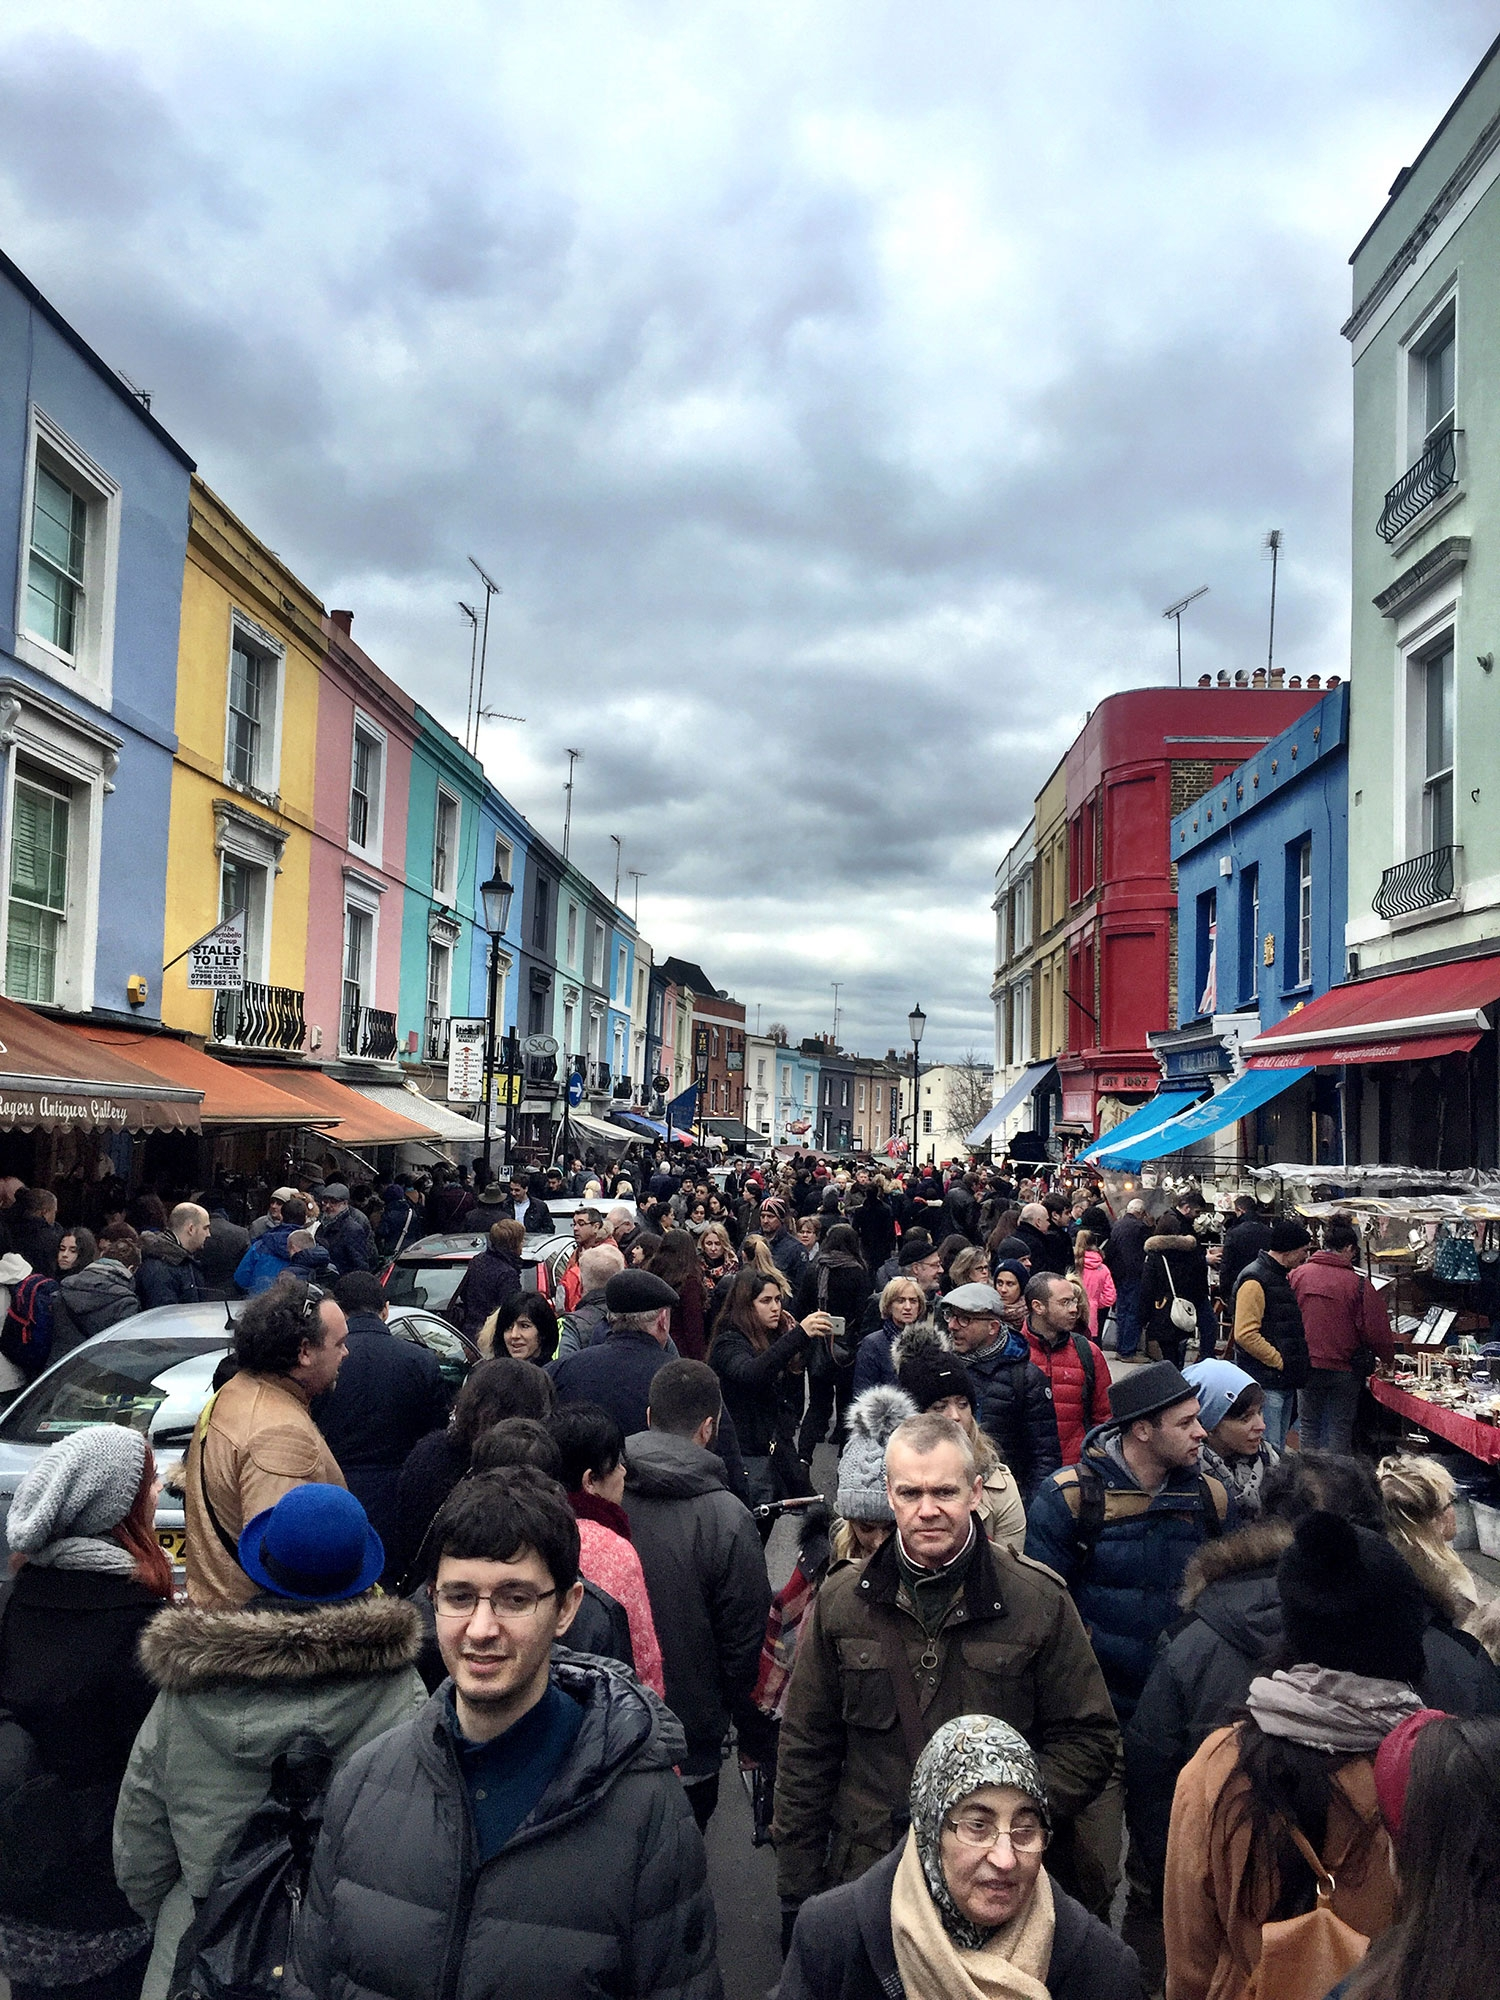 A sea of people in the streets at Portobello Market. March 2016